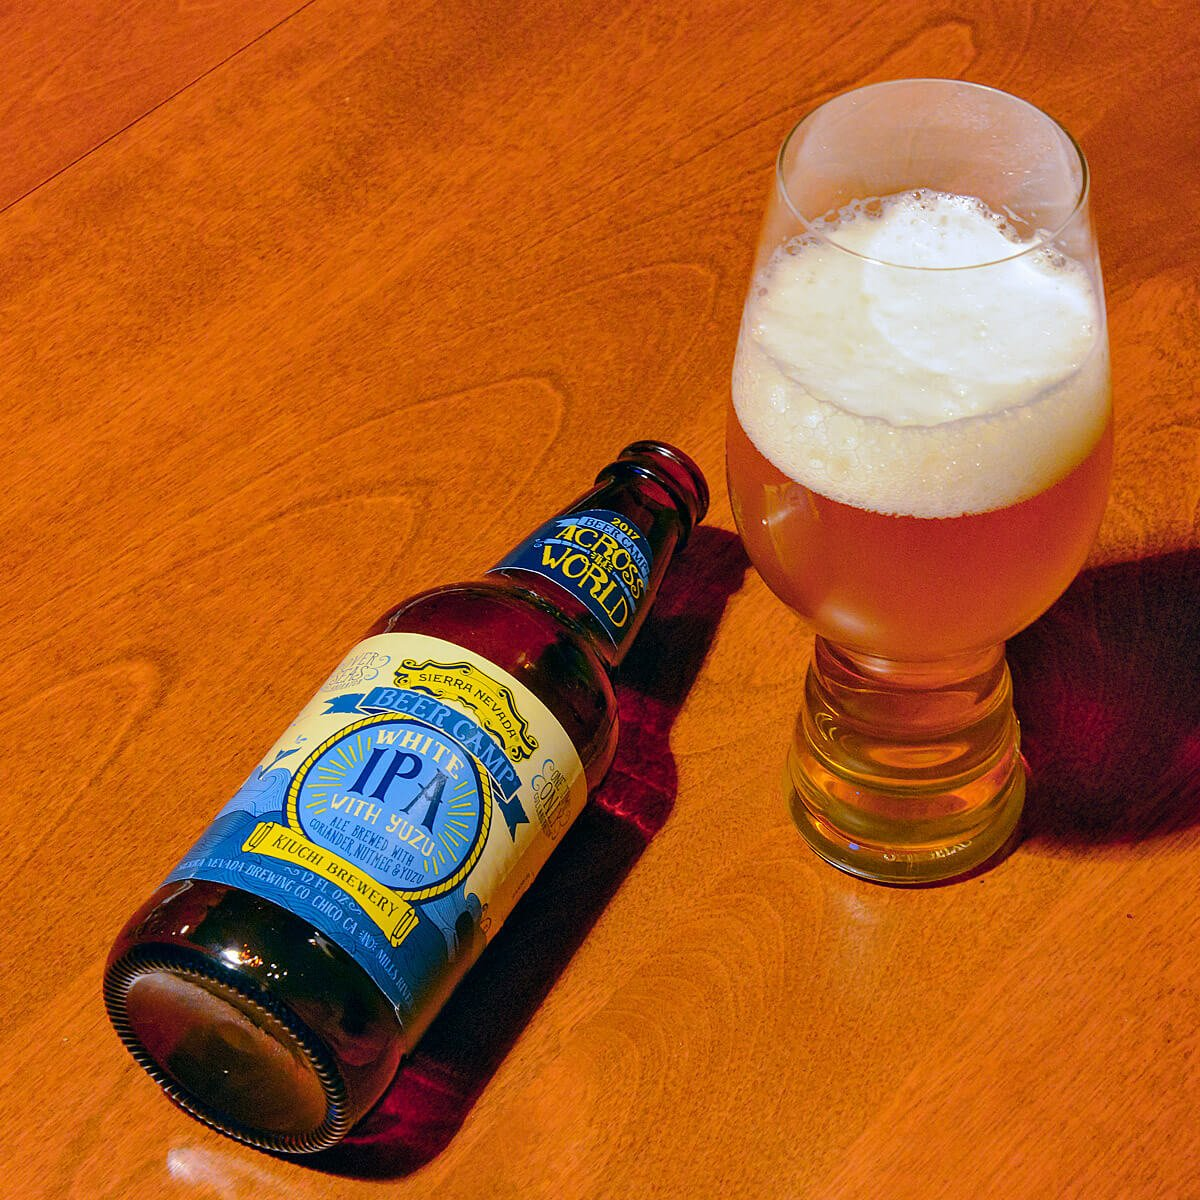 White IPA With Yuzu, a Belgian IPA by Sierra Nevada Brewing Co. and Kiuchi Brewery